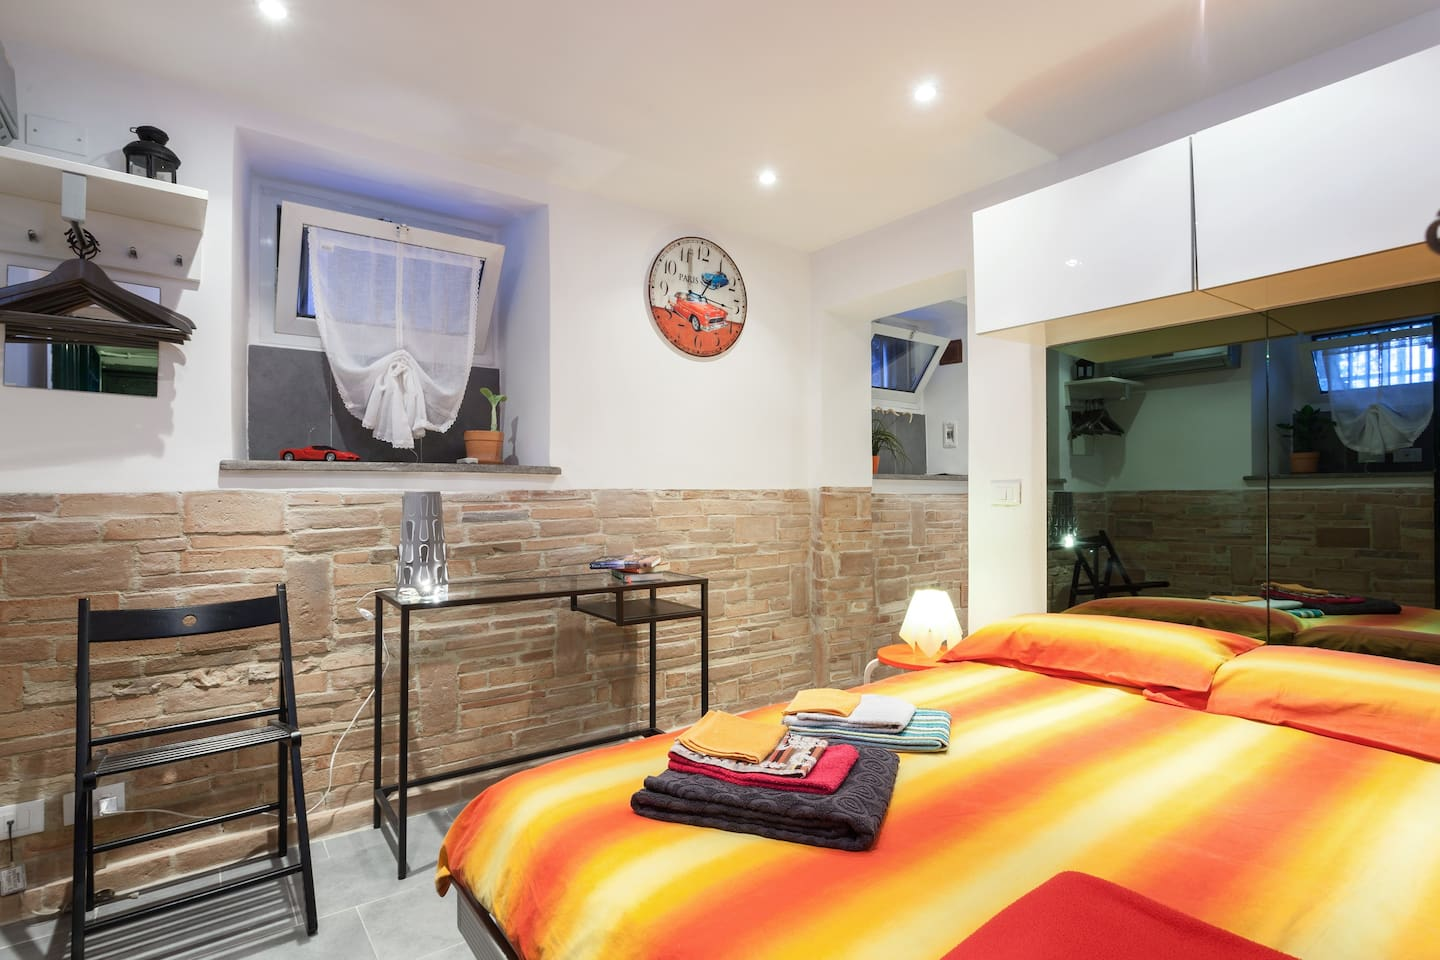 Home with large bed